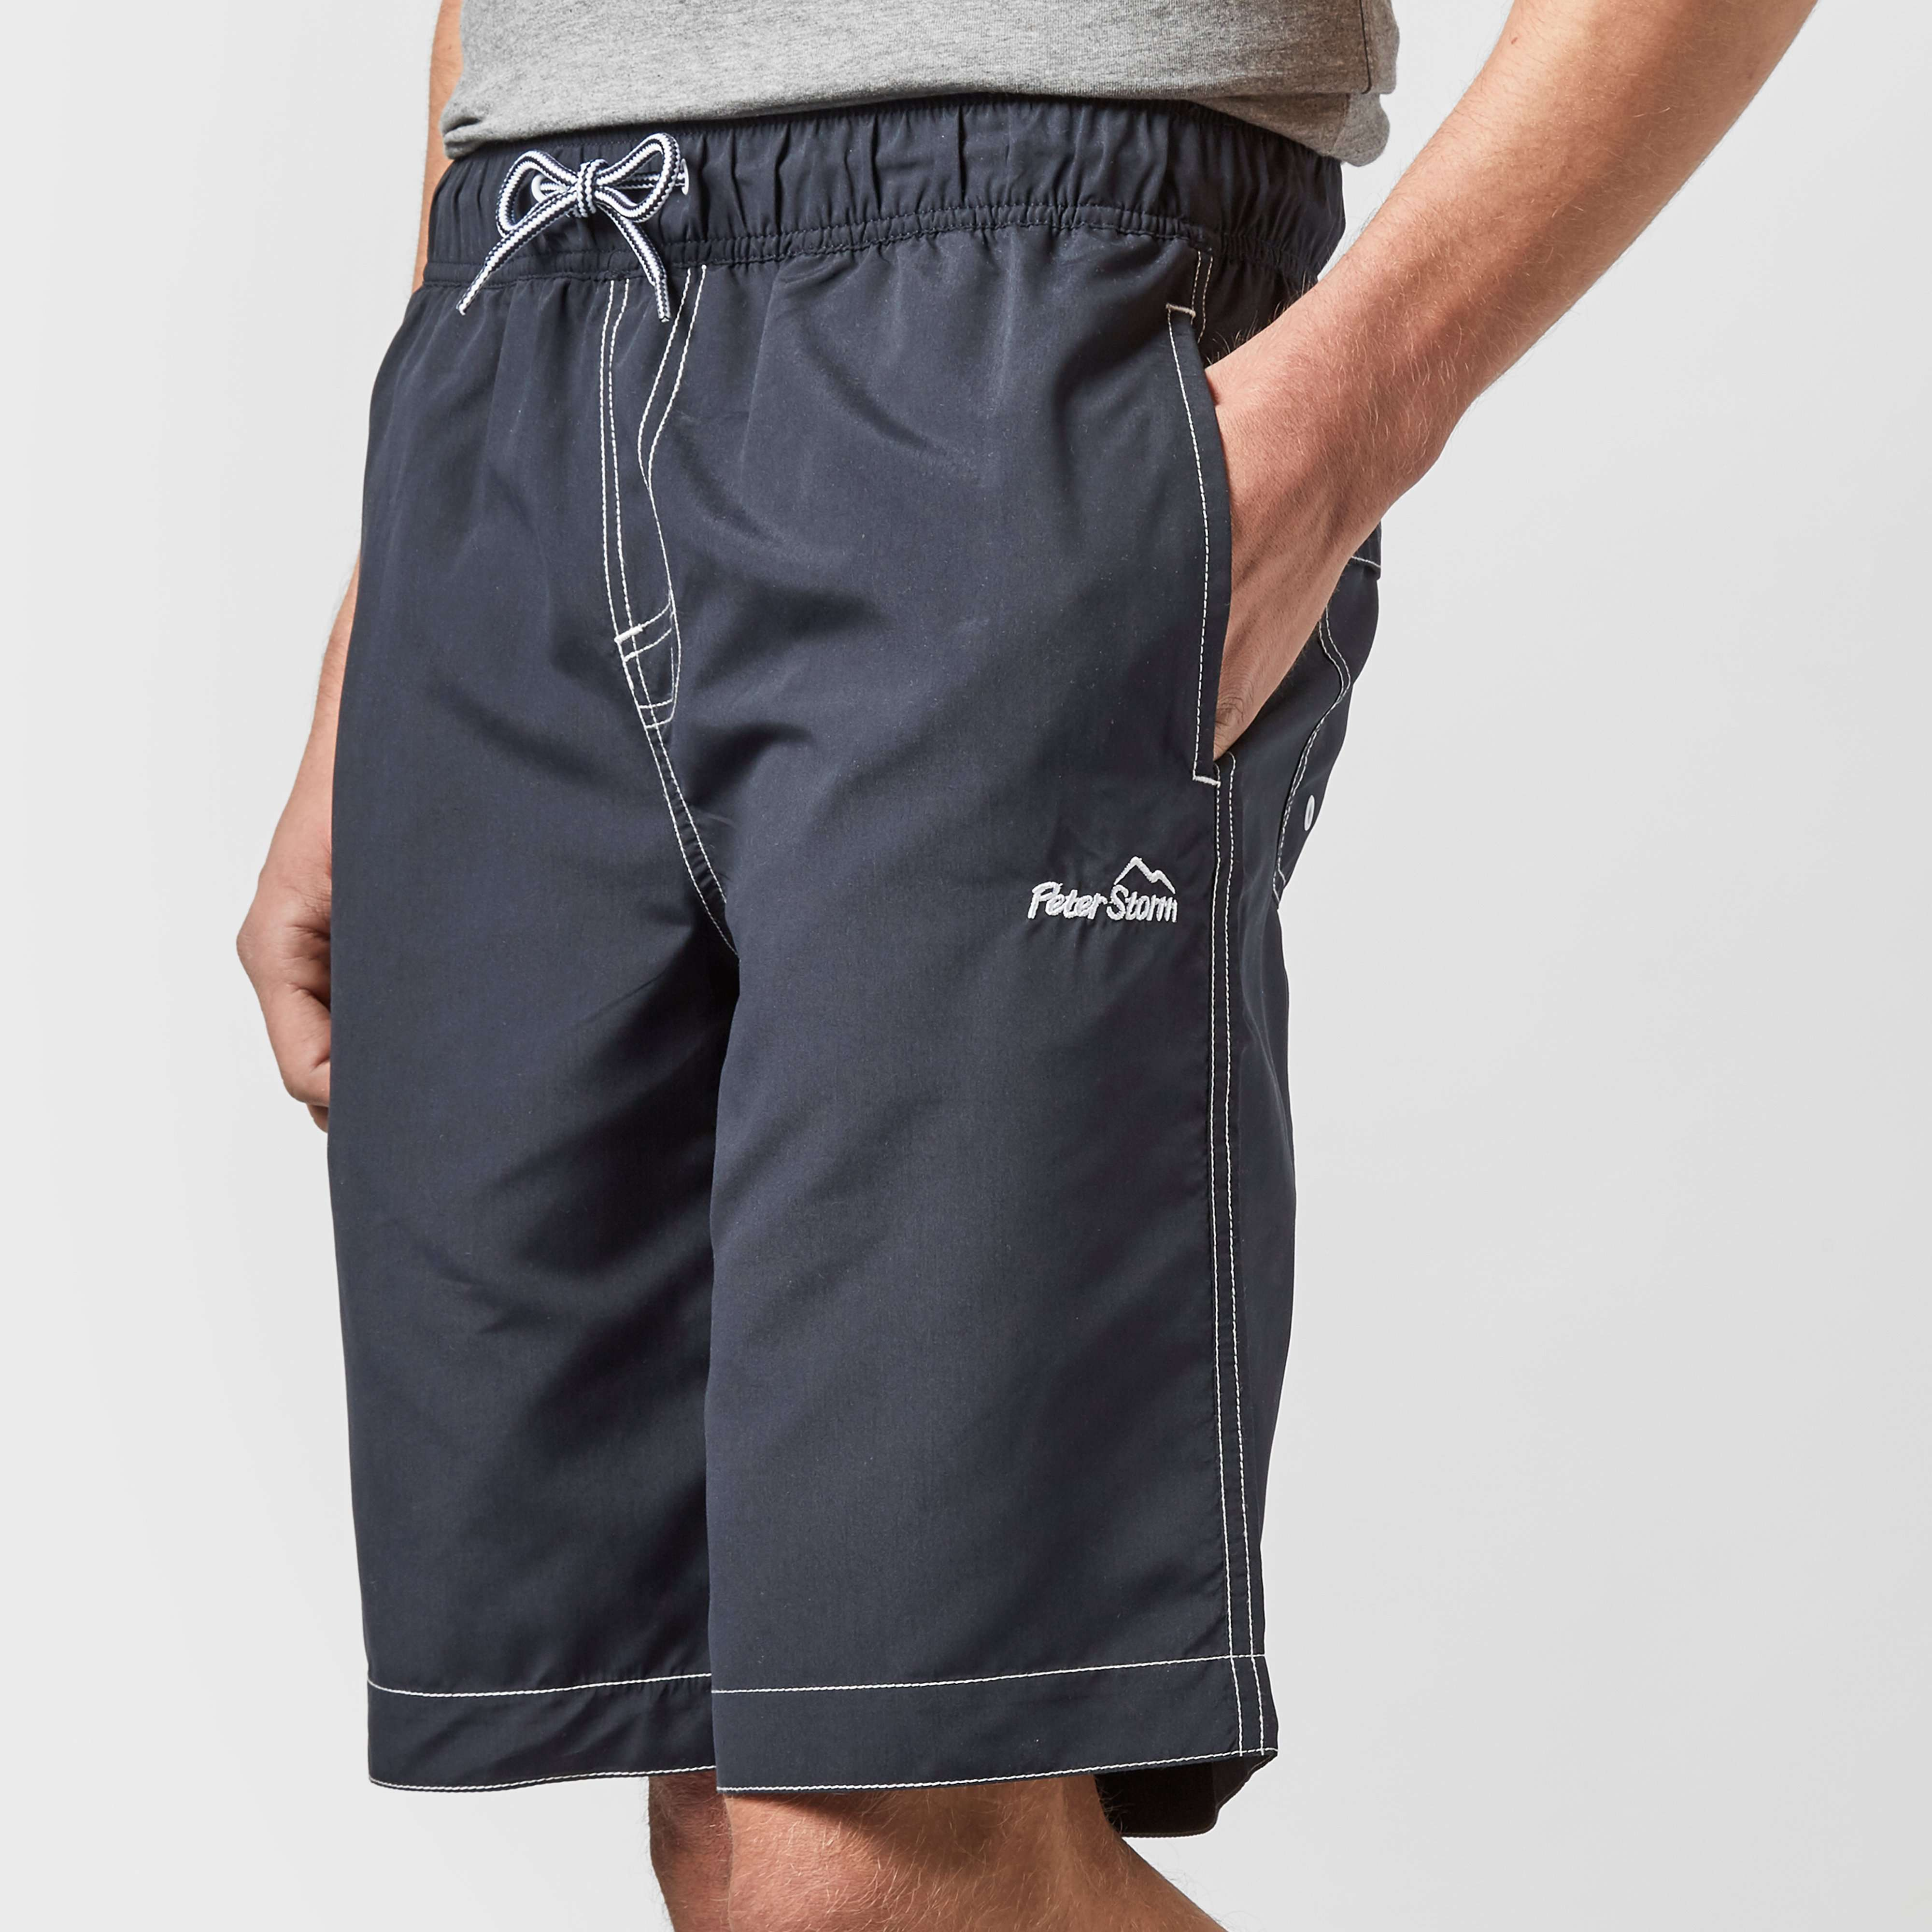 PETER STORM Men's Long Swim Shorts